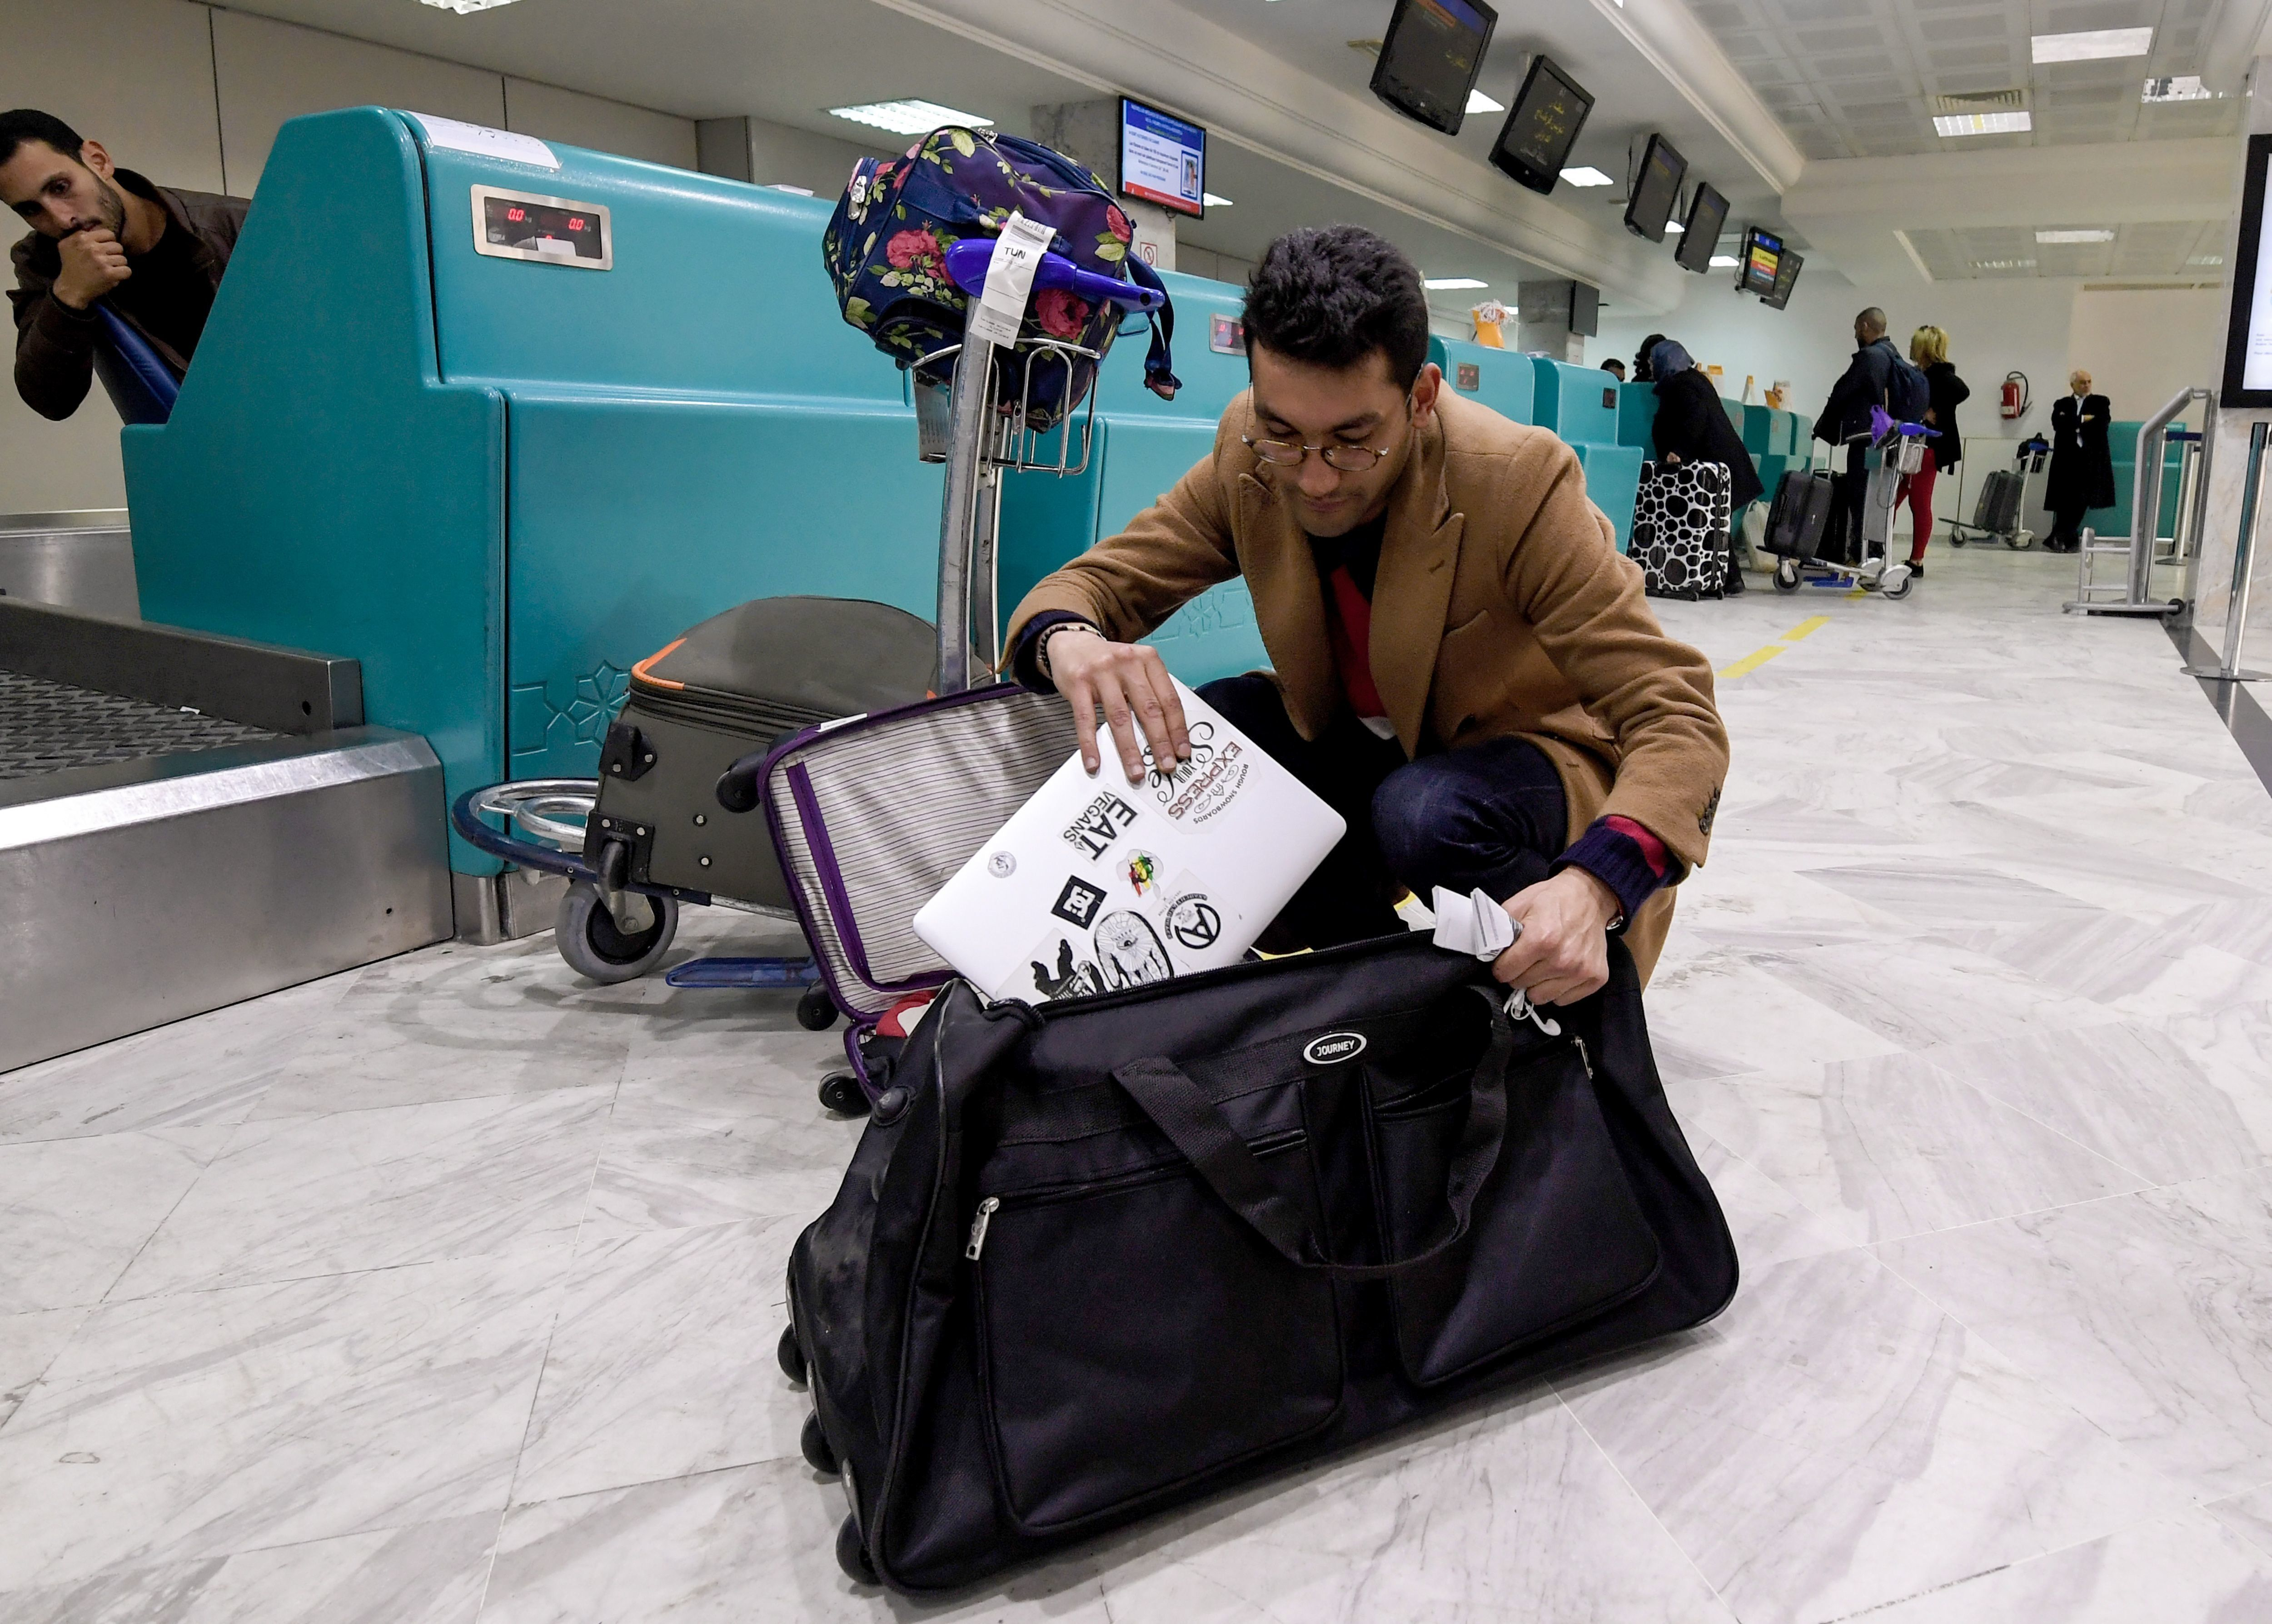 A Libyan traveller packs his laptop in his suitcase before boarding his flight for London at Tunis-Carthage International Airport on March 25, 2017. The United States this week announced a ban on all electronics larger than a standard smartphone on board direct flights out of eight countries across the Middle East, in effect from March 25, 2017. US officials would not specify how long the ban will last, but Emirates told AFP that it had been instructed to enforce the measures until at least October 14. Britain has also announced a parallel electronics ban targeting all flights out of Egypt, Turkey, Jordan, Saudi Arabia, Tunisia and Lebanon. / AFP PHOTO / FETHI BELAID        (Photo credit should read FETHI BELAID/AFP/Getty Images)